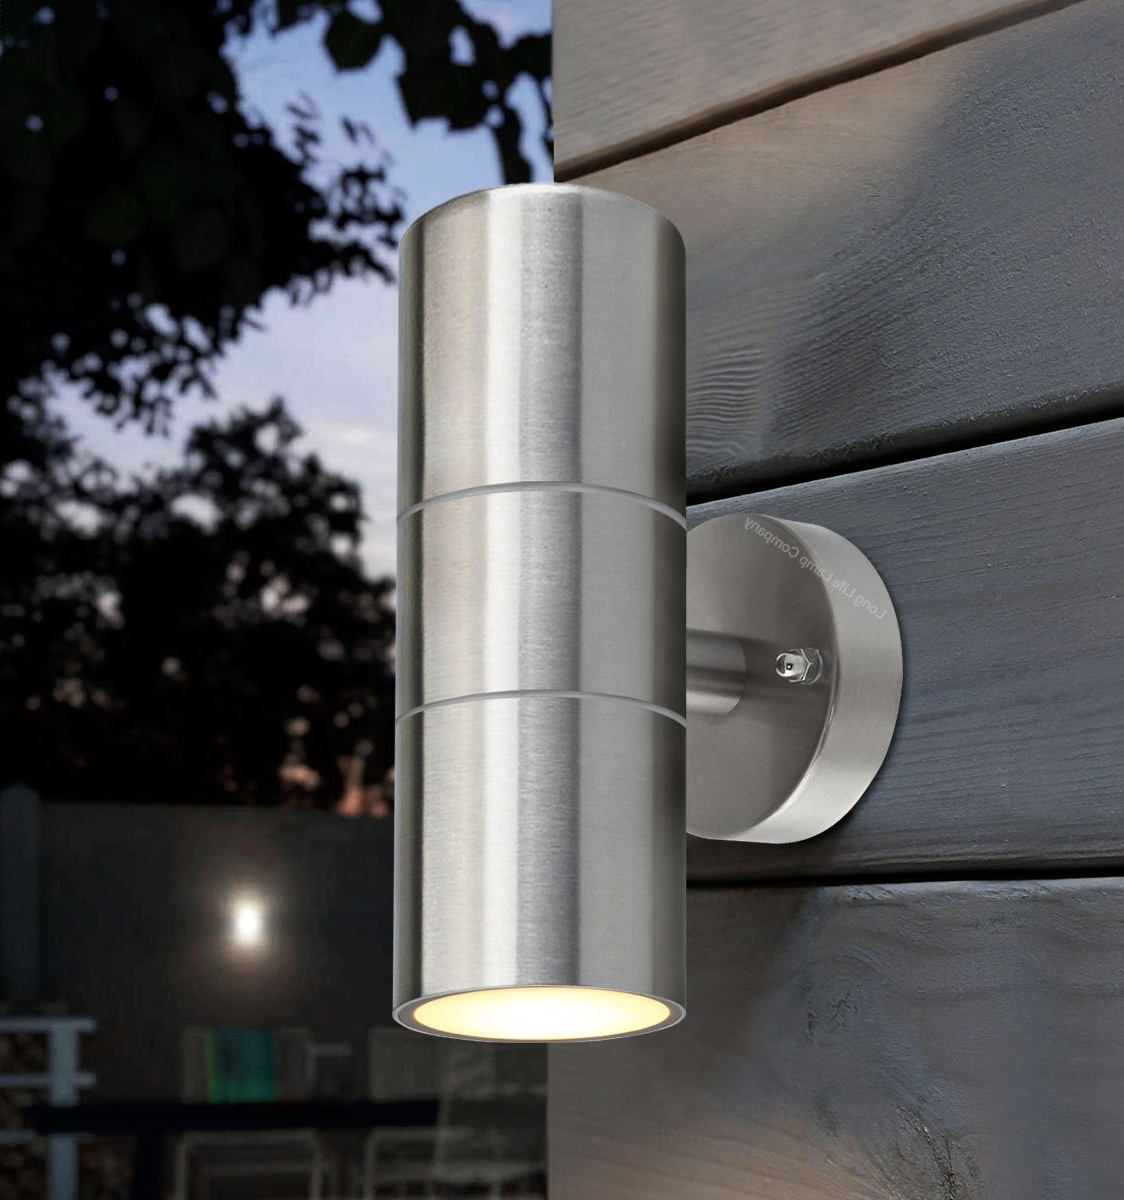 Most Recent Stainless Steel Up Down Wall Light Gu10 Ip65 Double Outdoor Wall In Northern Ireland Outdoor Wall Lights (View 10 of 20)